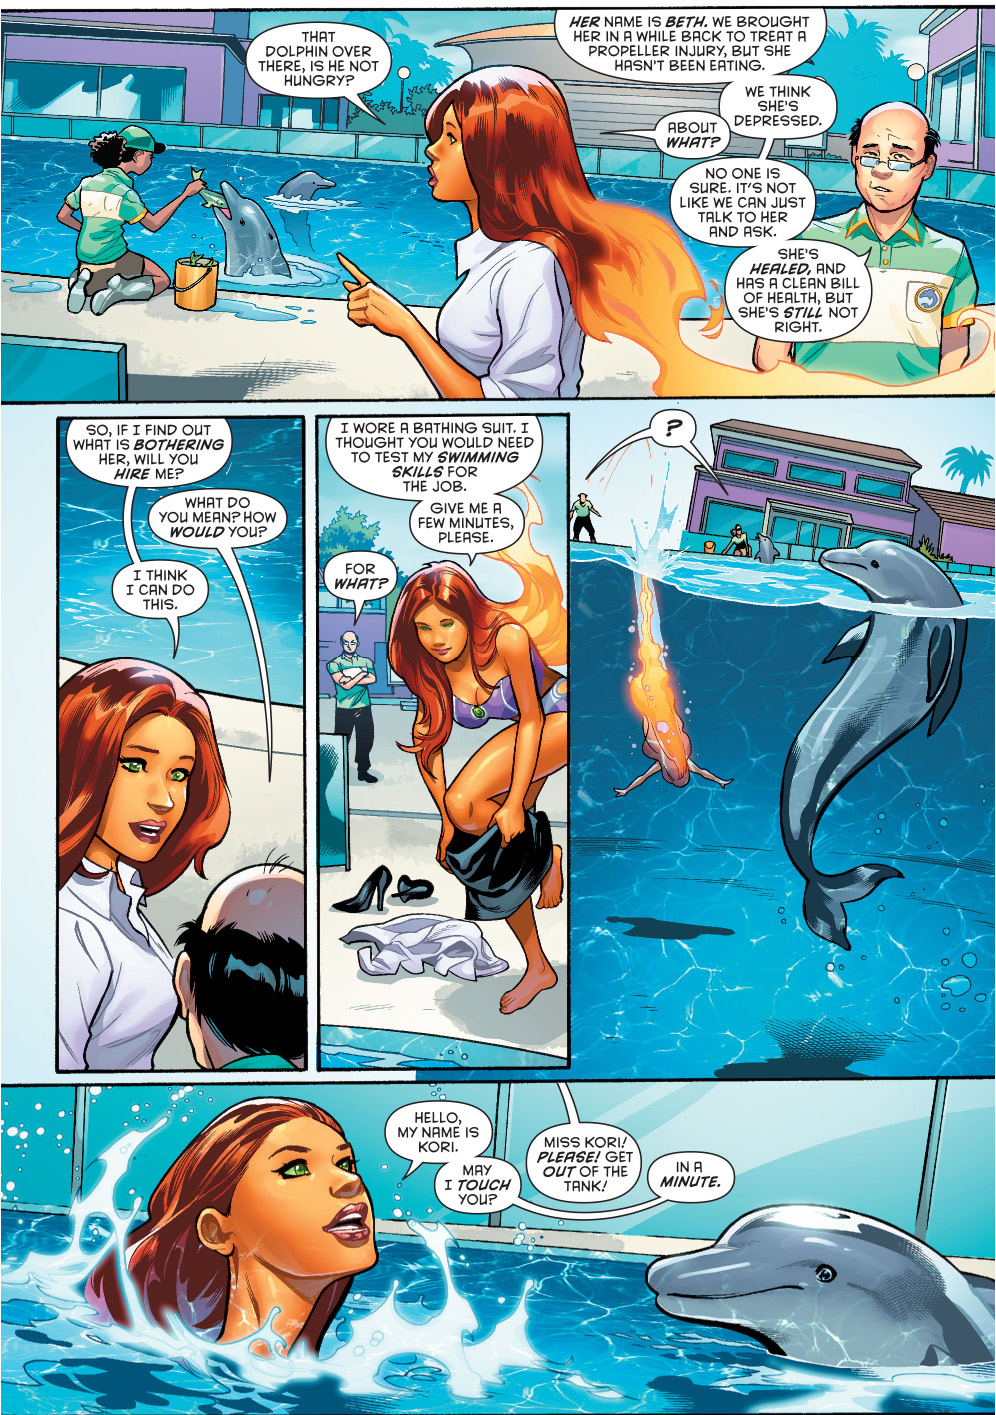 starfire helps out a dolphin